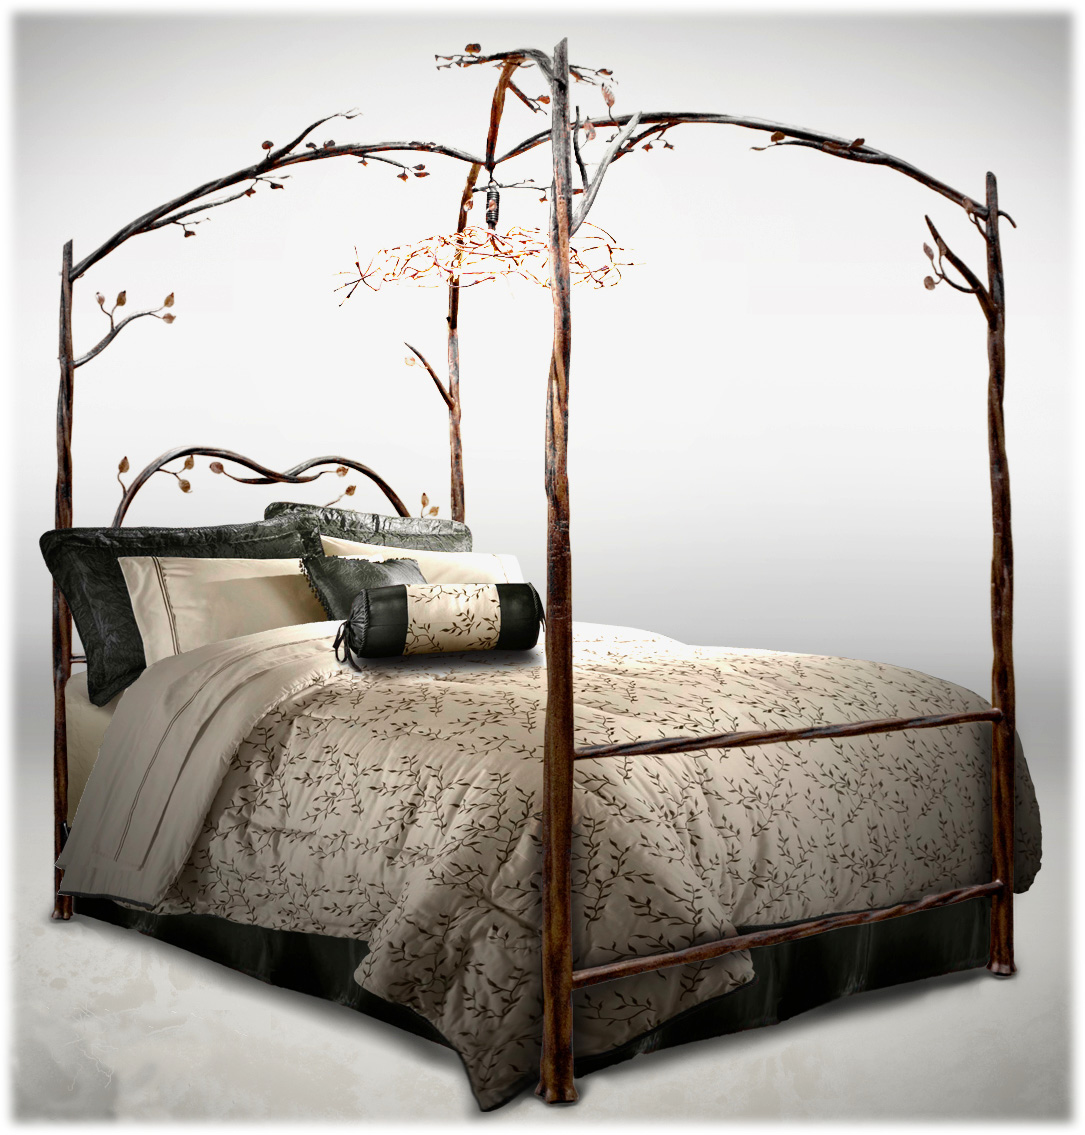 - Enchanted Bed, Stone County Iron Works, Designer Canopy Bed